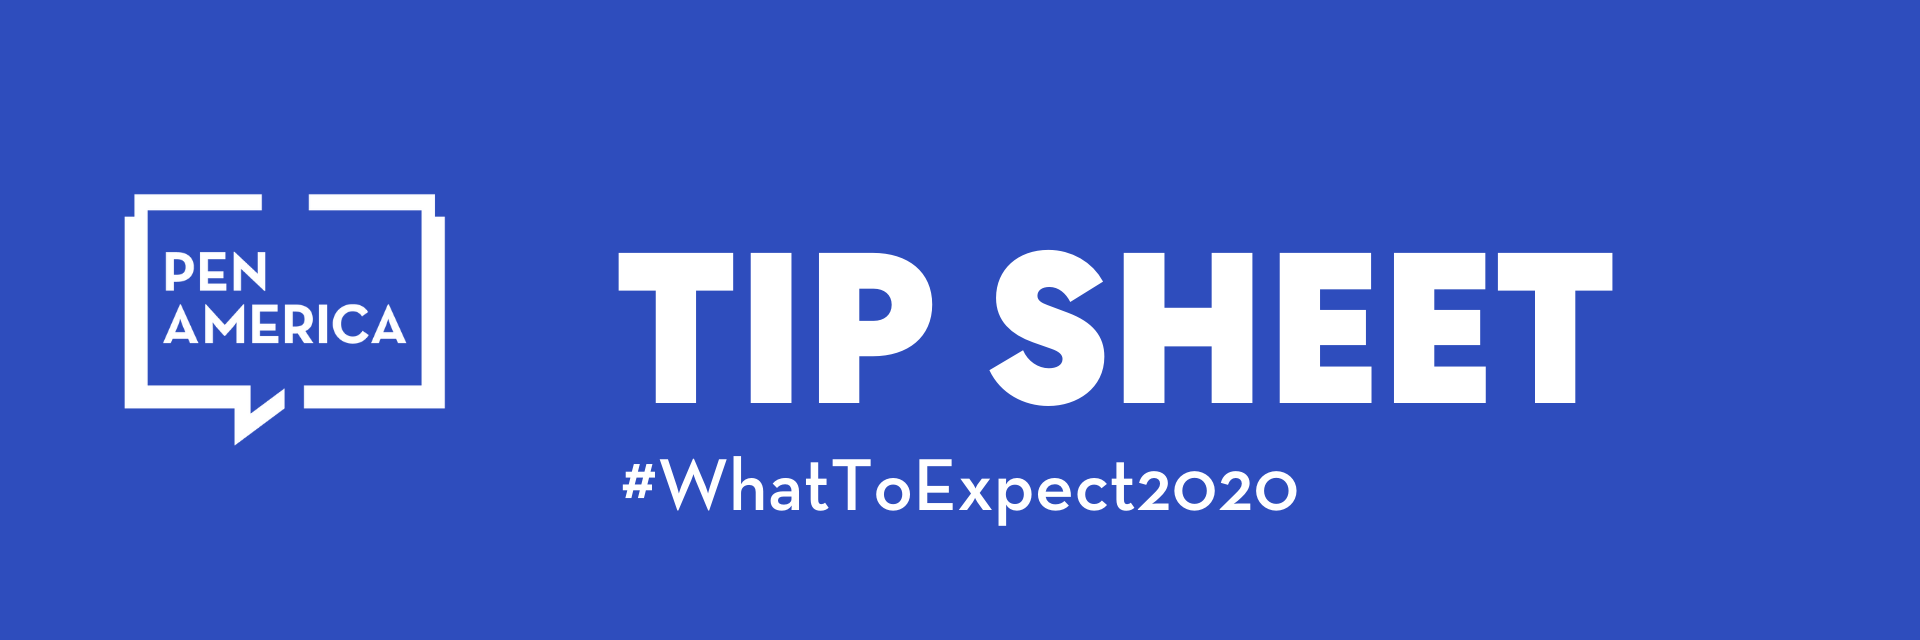 """Tip sheet banner: logo, """"Tip Sheet"""" and """"#WhatToExpect2020"""" in words"""